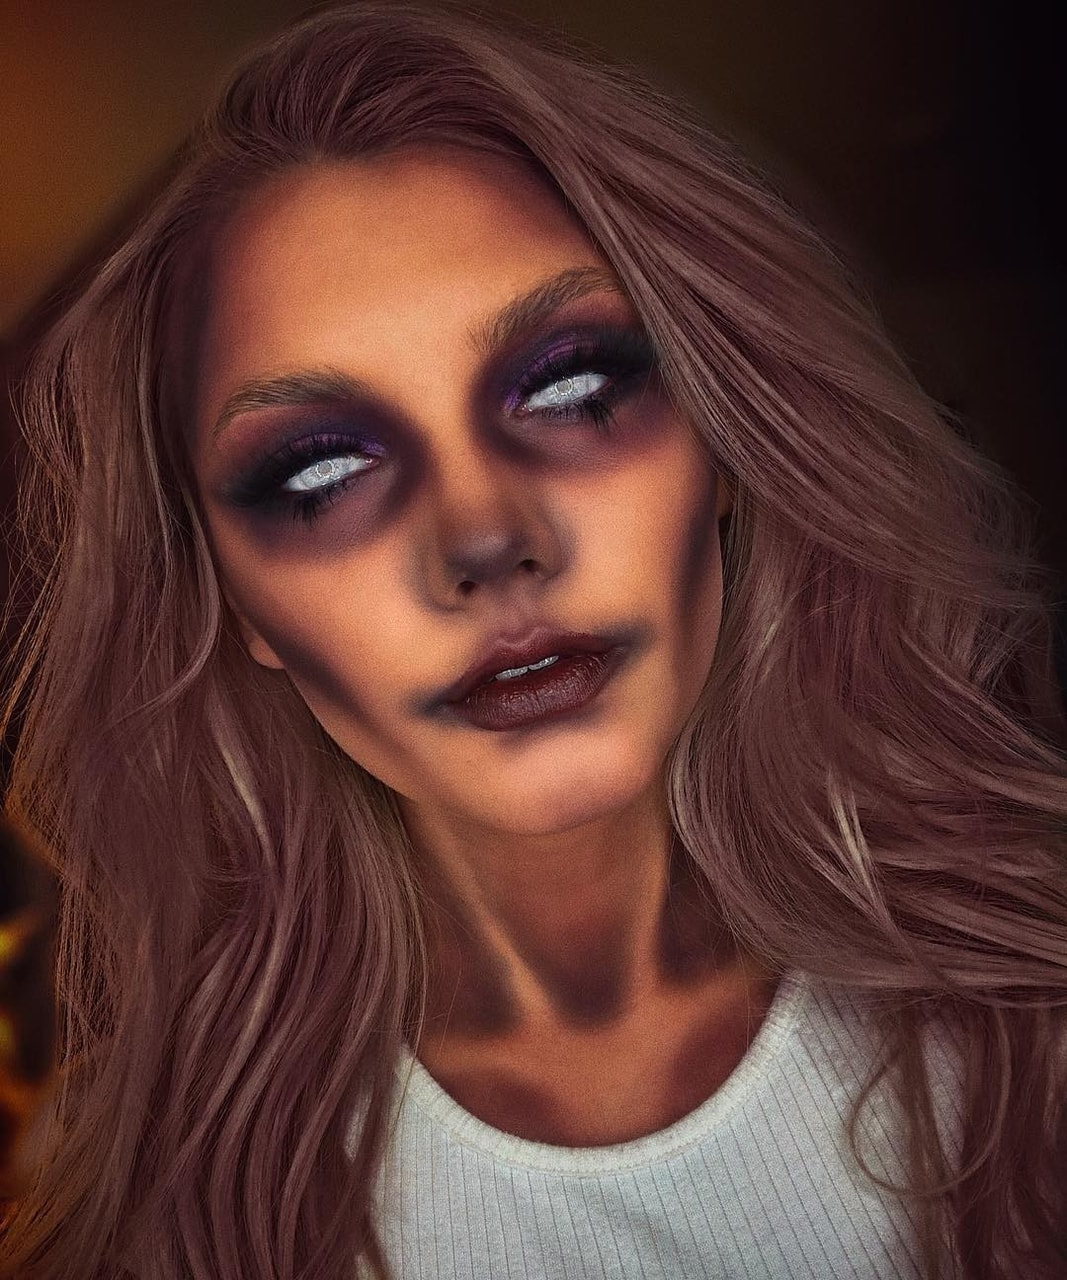 spooky, halloween, aesthetic makeup and halloween makeup